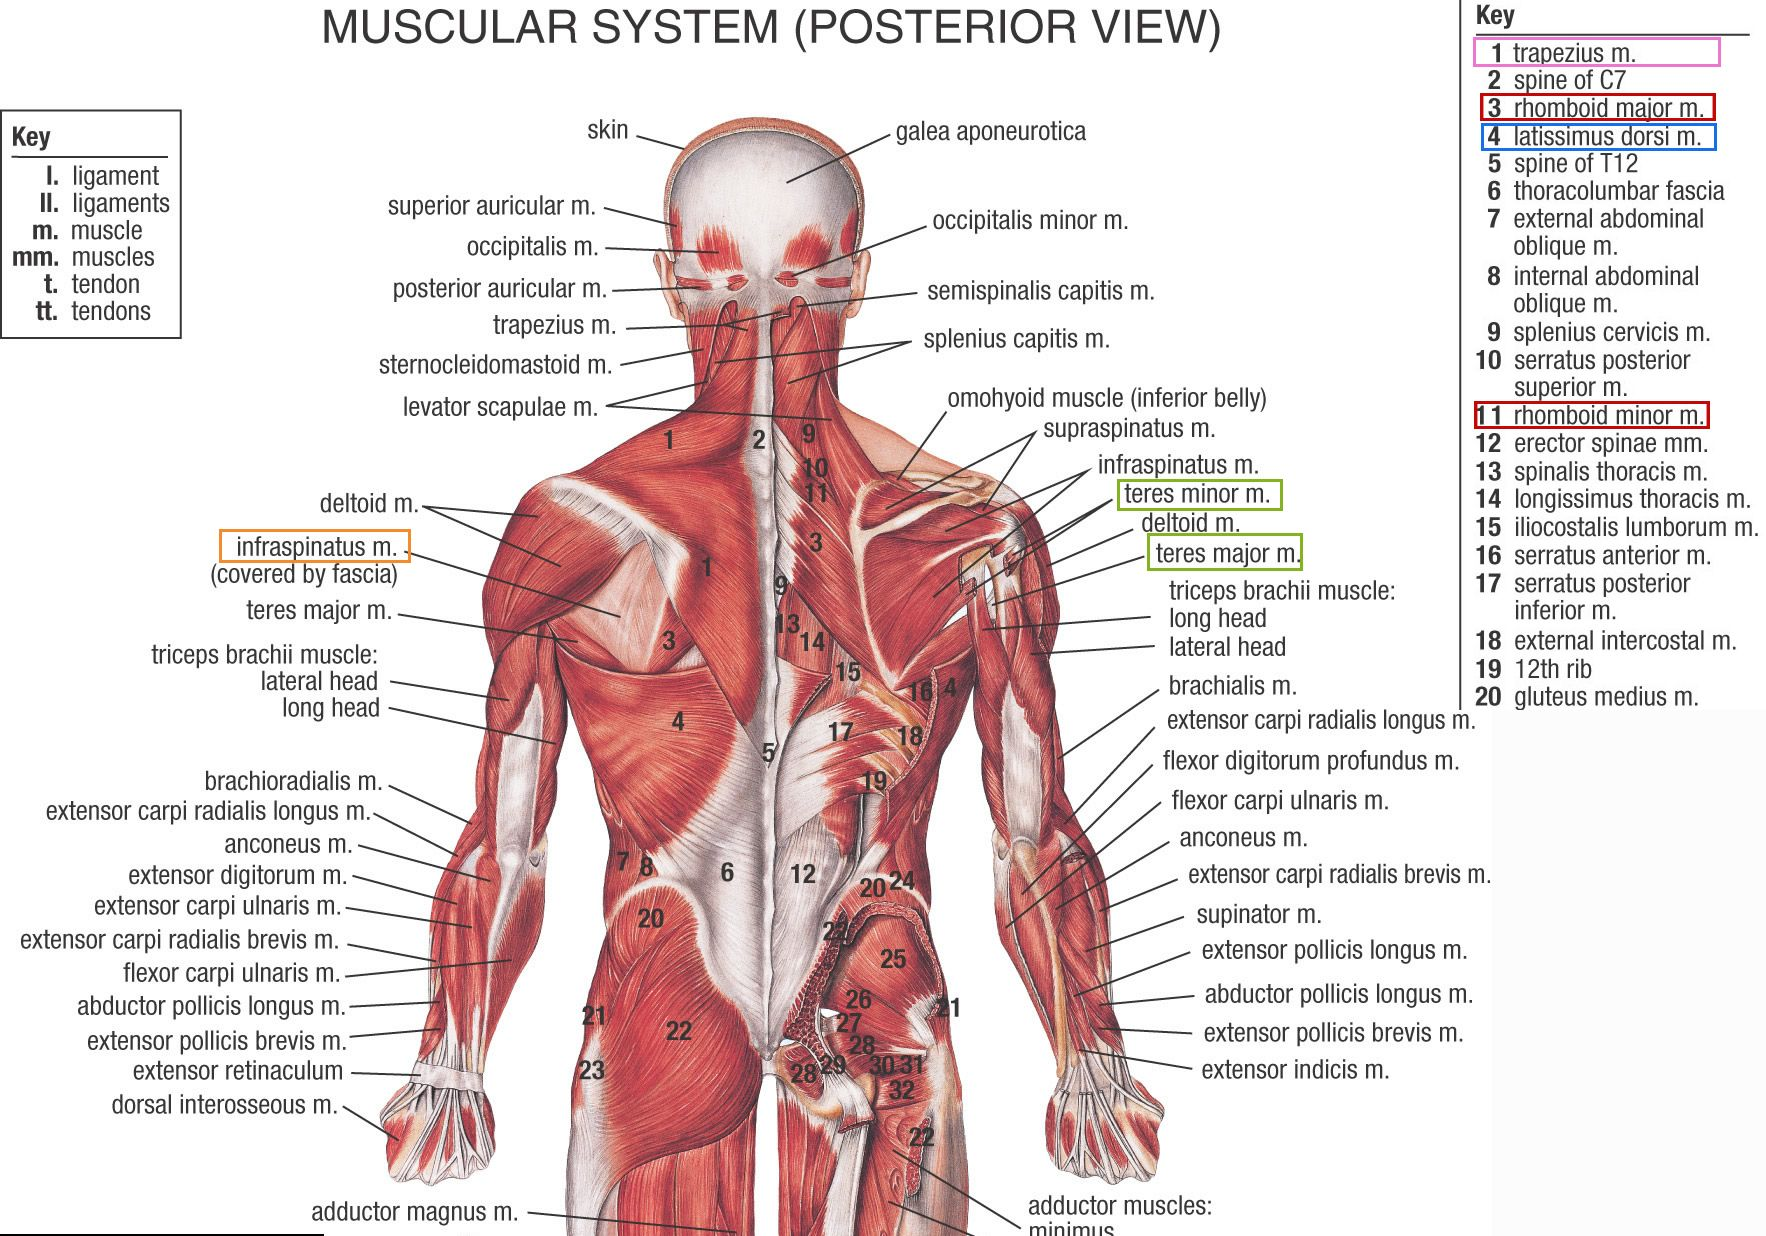 Muscles Ligaments And Tendons Of The Human Back  Nerd